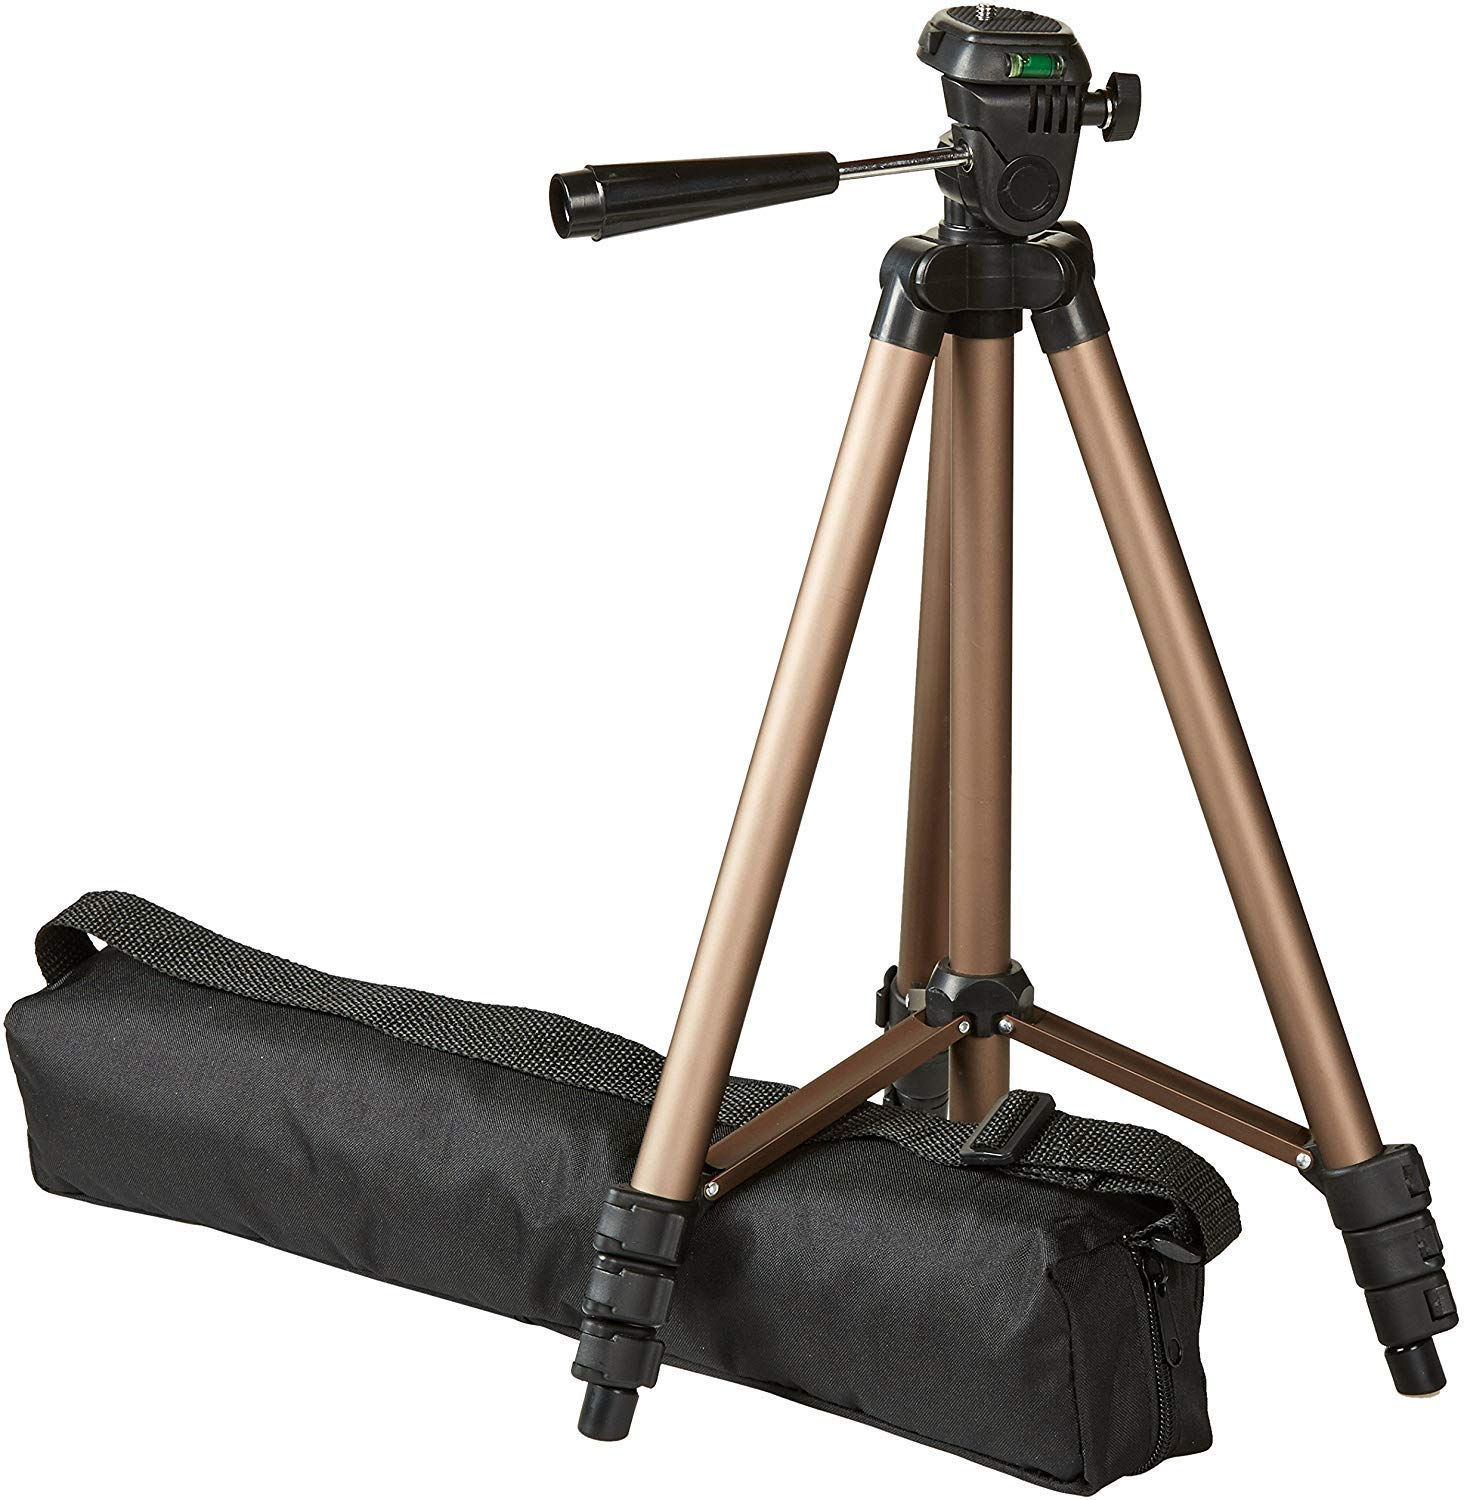 AmazonBasics Lightweight Best Tripod Stand For Mobile with Bag